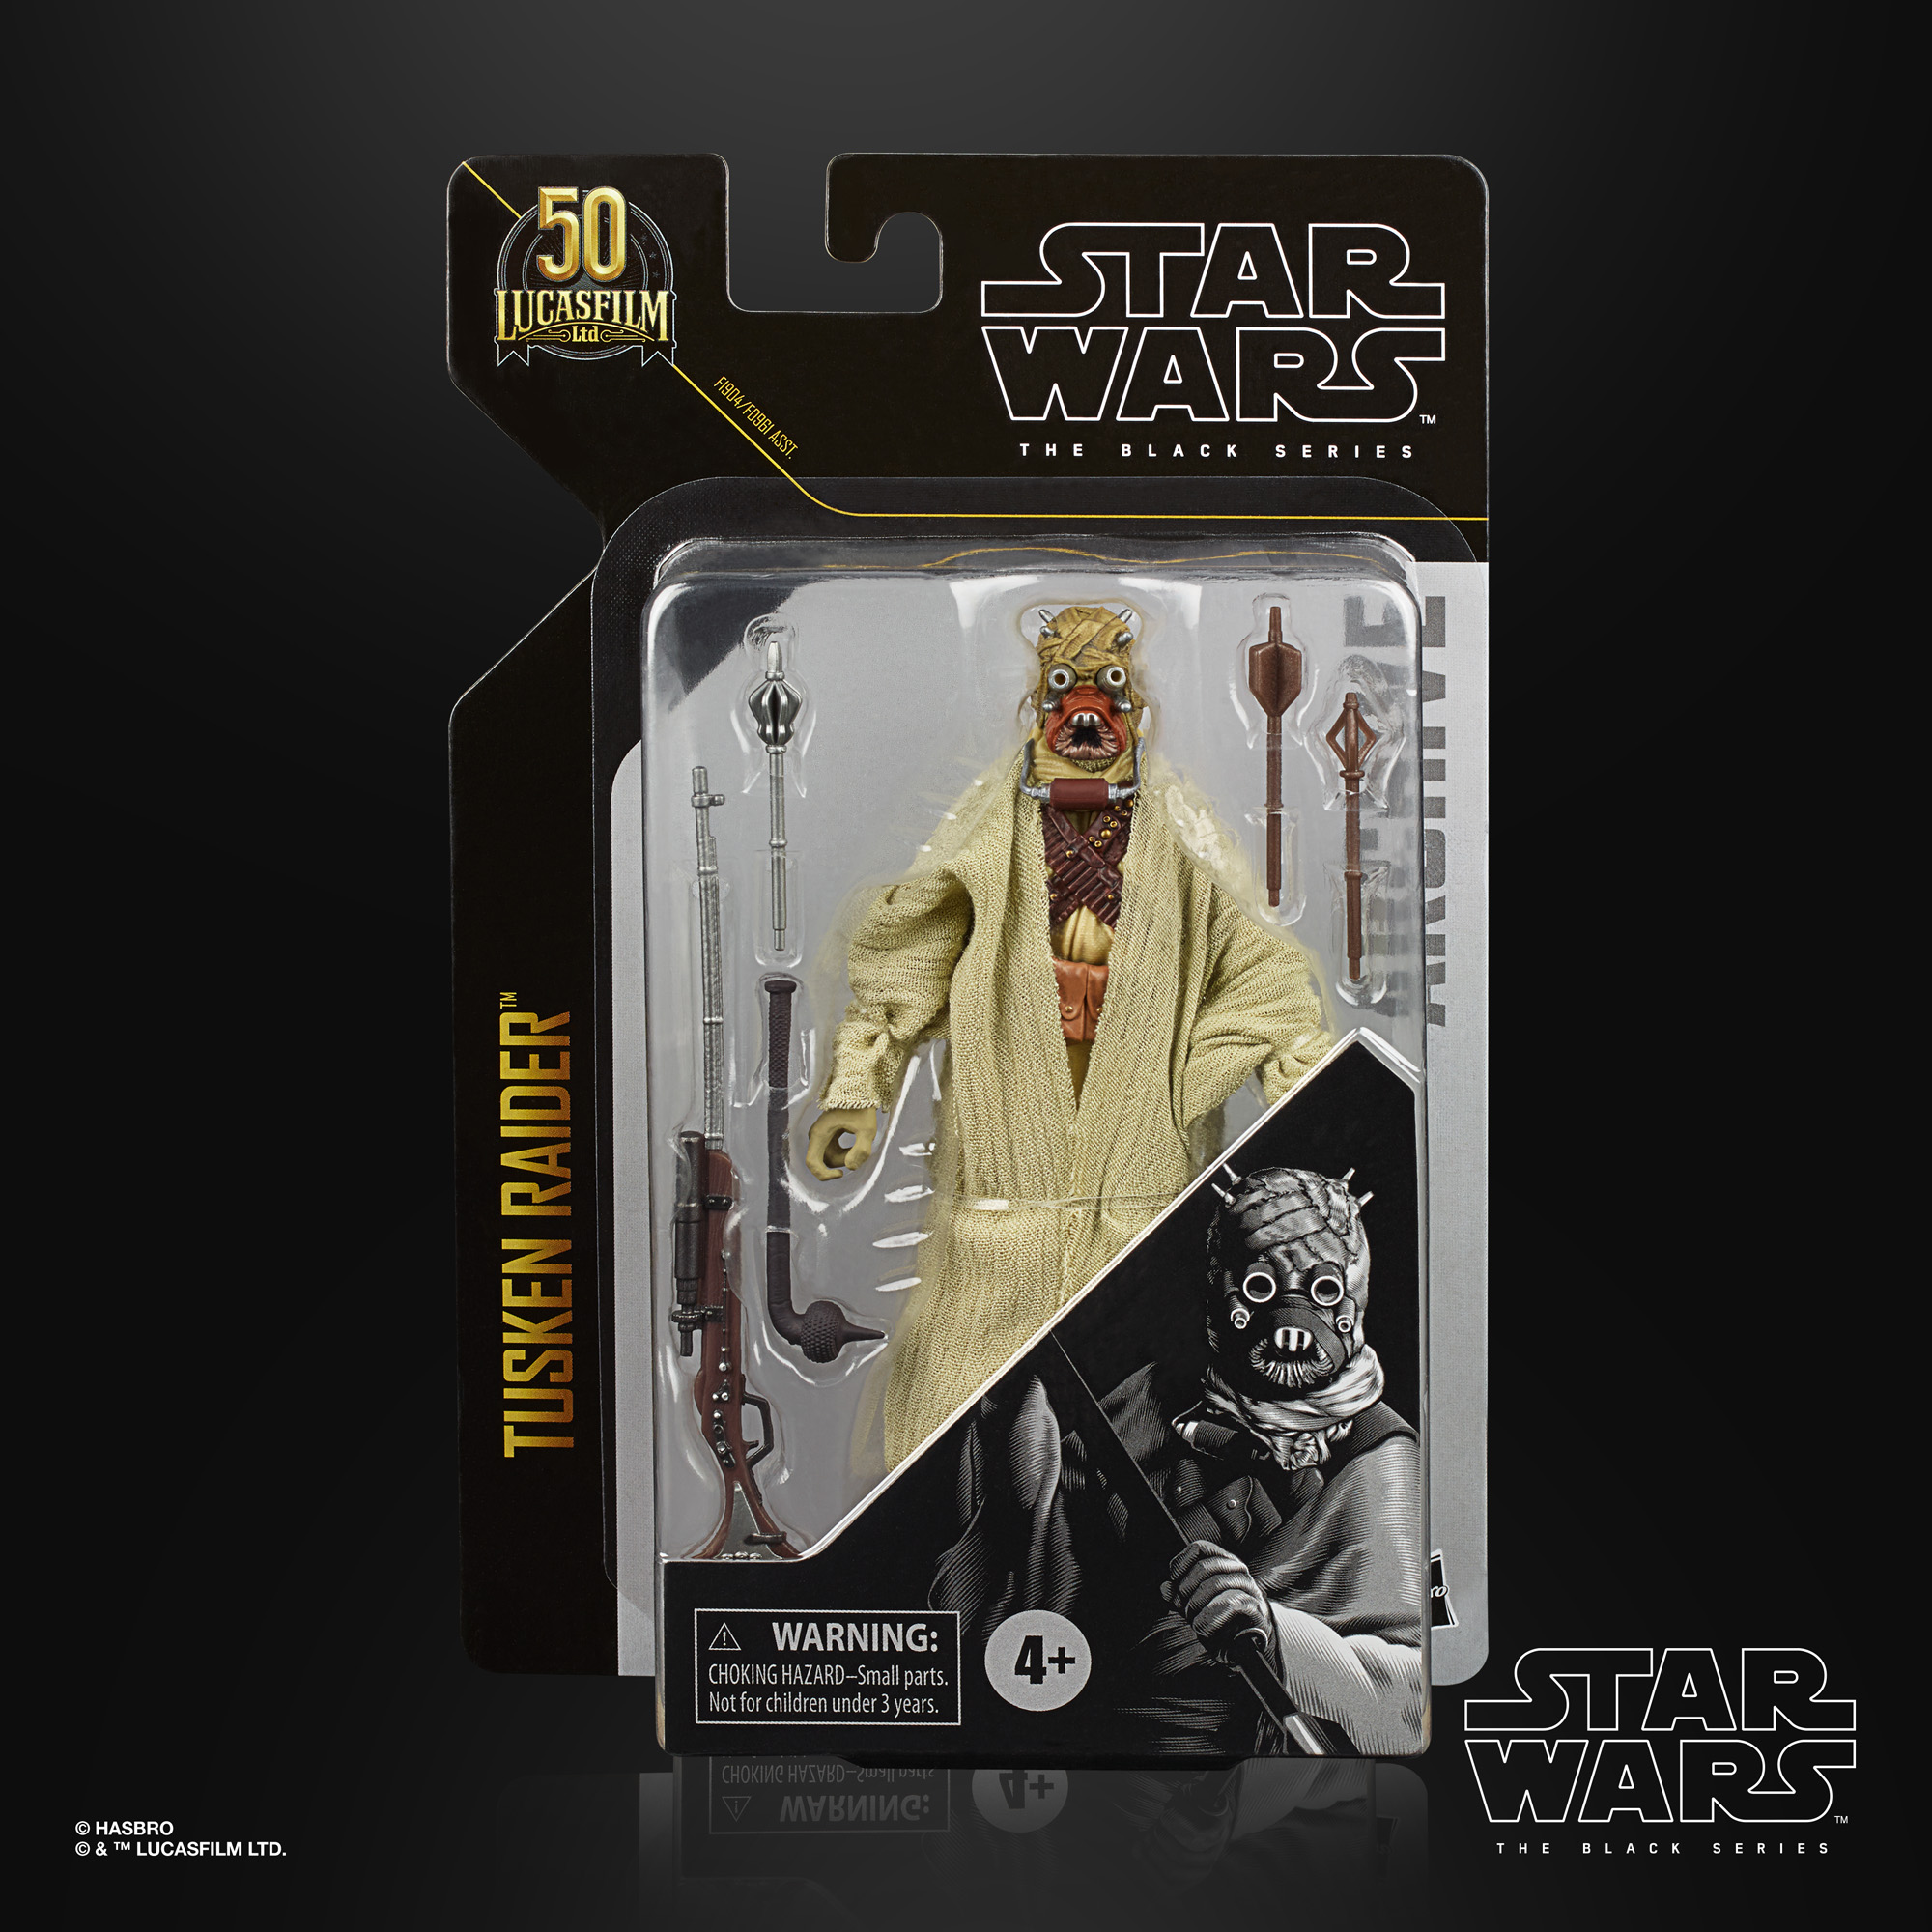 Star Wars The Black Series Archive Line Tusken Raider 15cm F19045L00 5010993825370